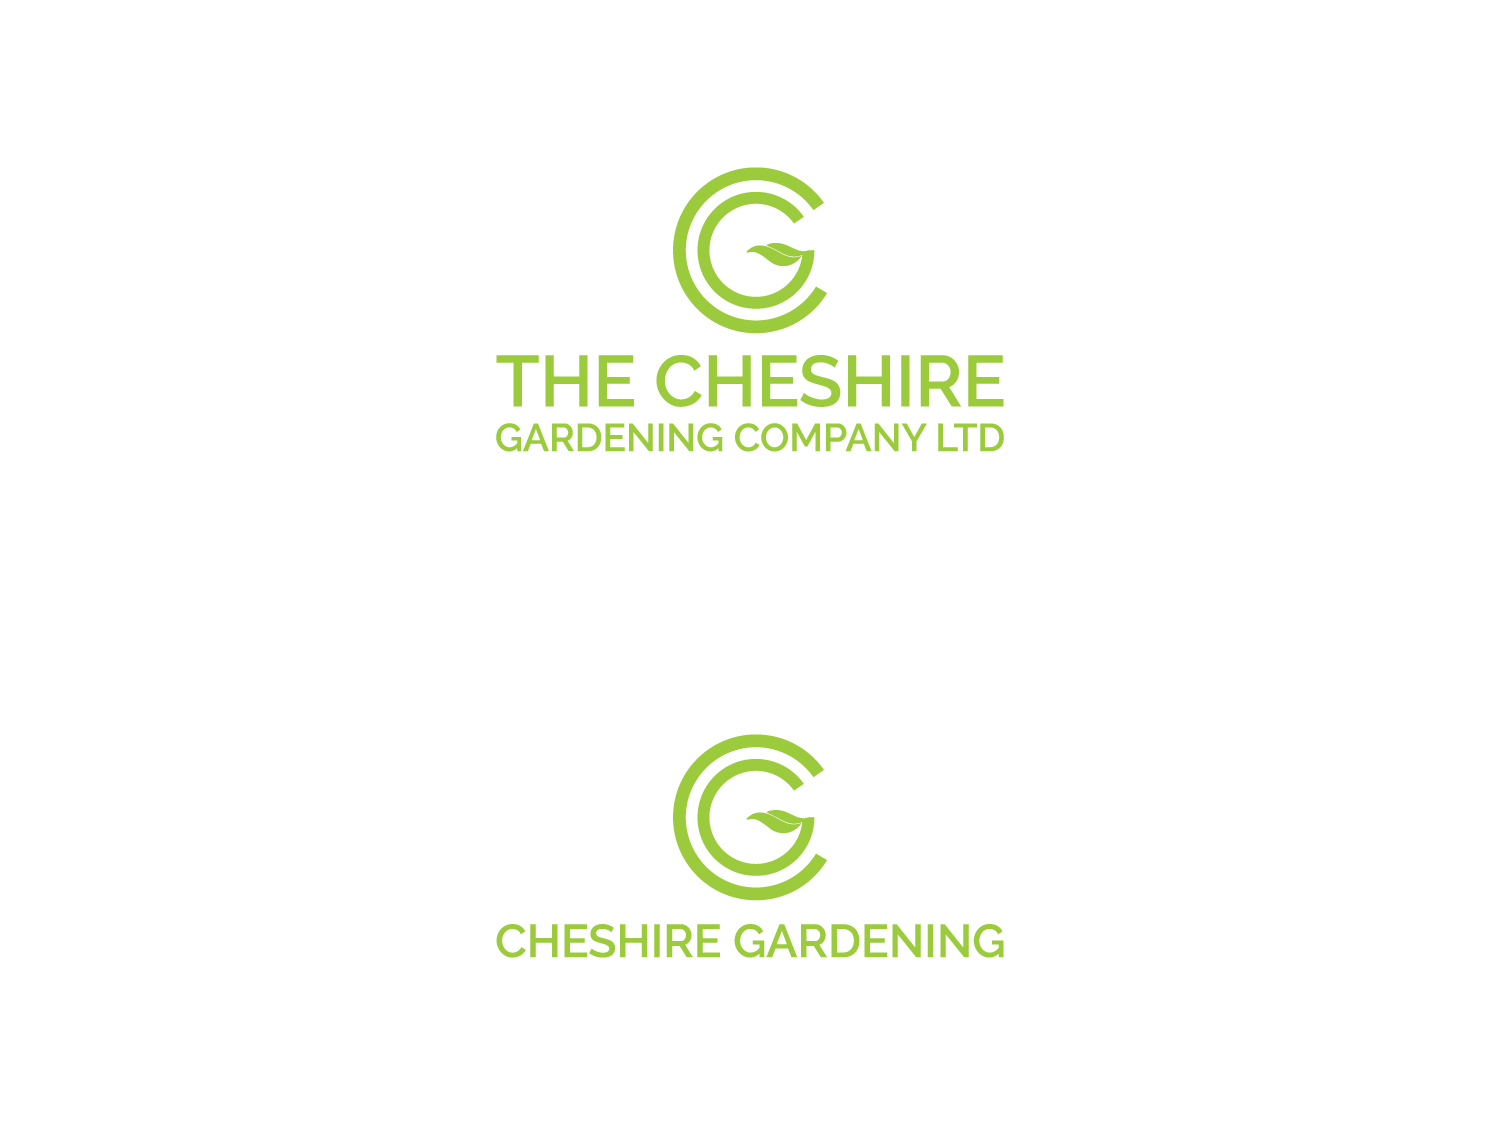 Charmant Logo Design By Jisuvo9 For The Cheshire Gardening Company Ltd | Design  #15100416